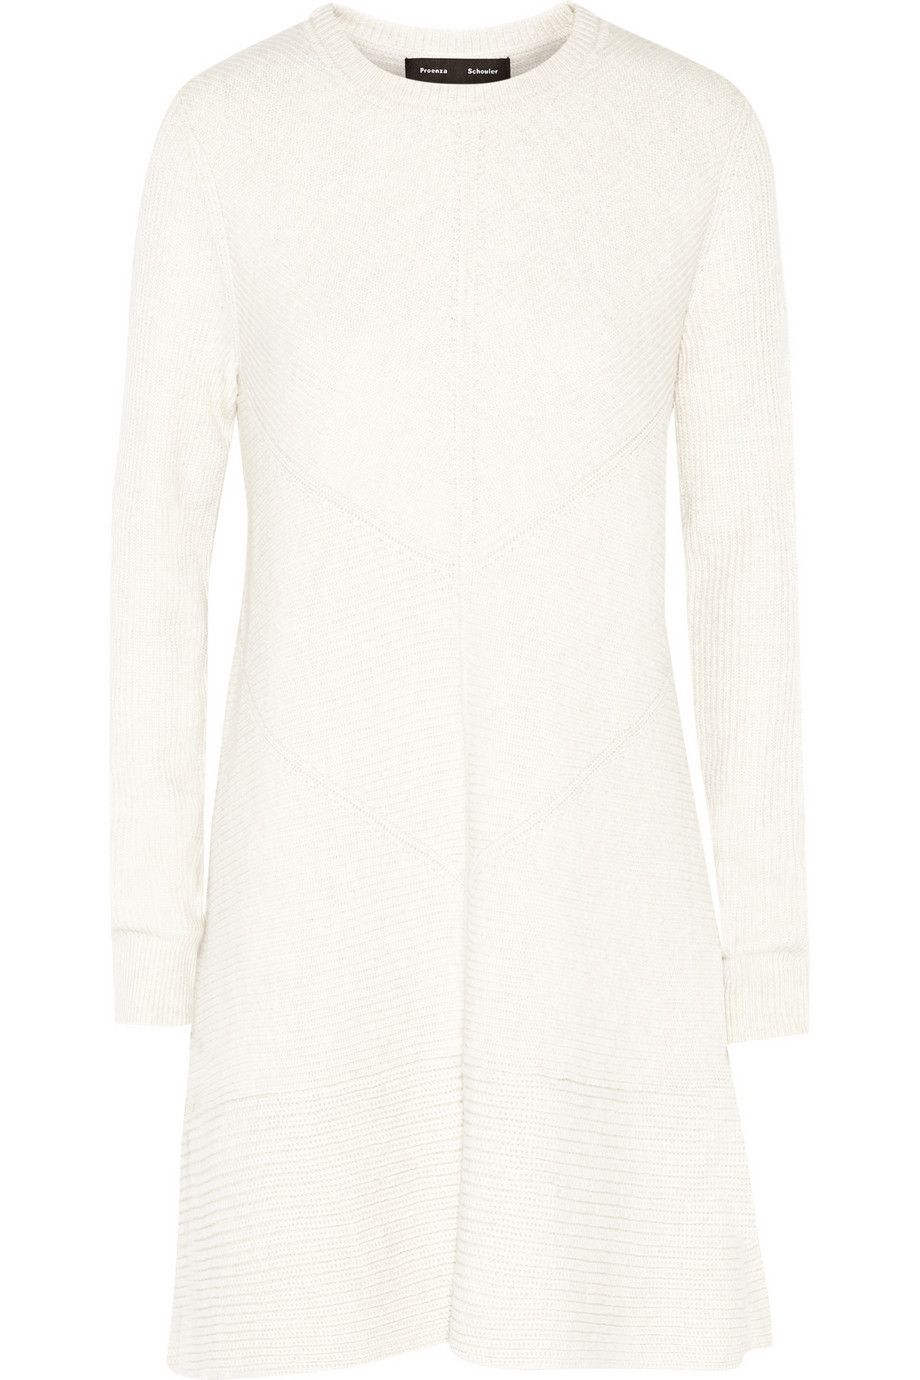 Proenza Schouler | Ribbed wool and cashmere-blend dress | NET-A-PORTER.COM